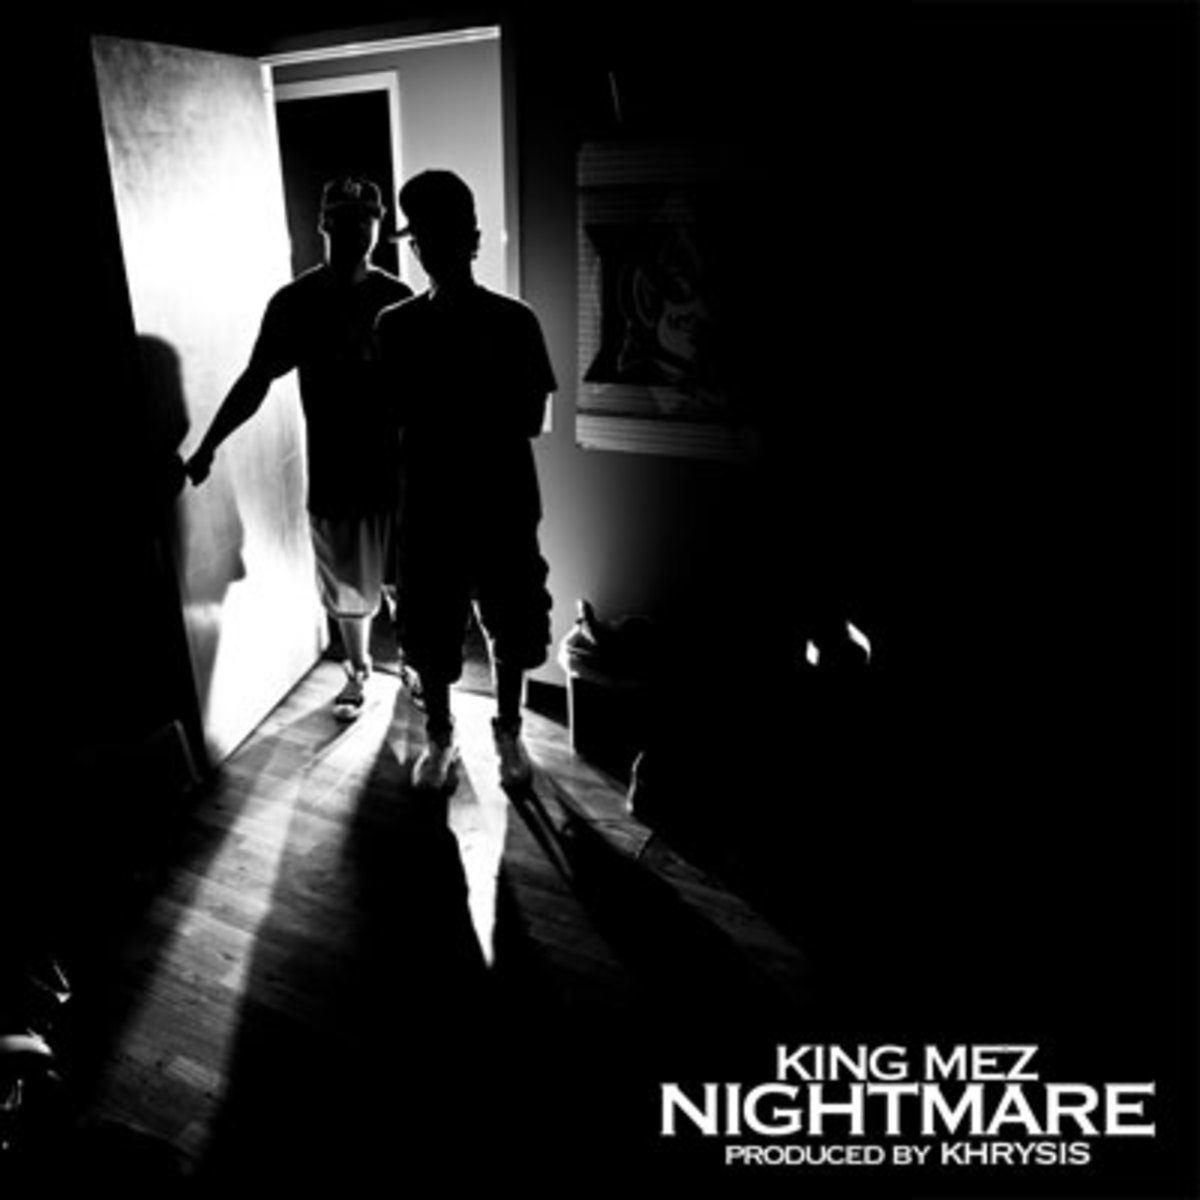 kingmez-nightmares.jpg